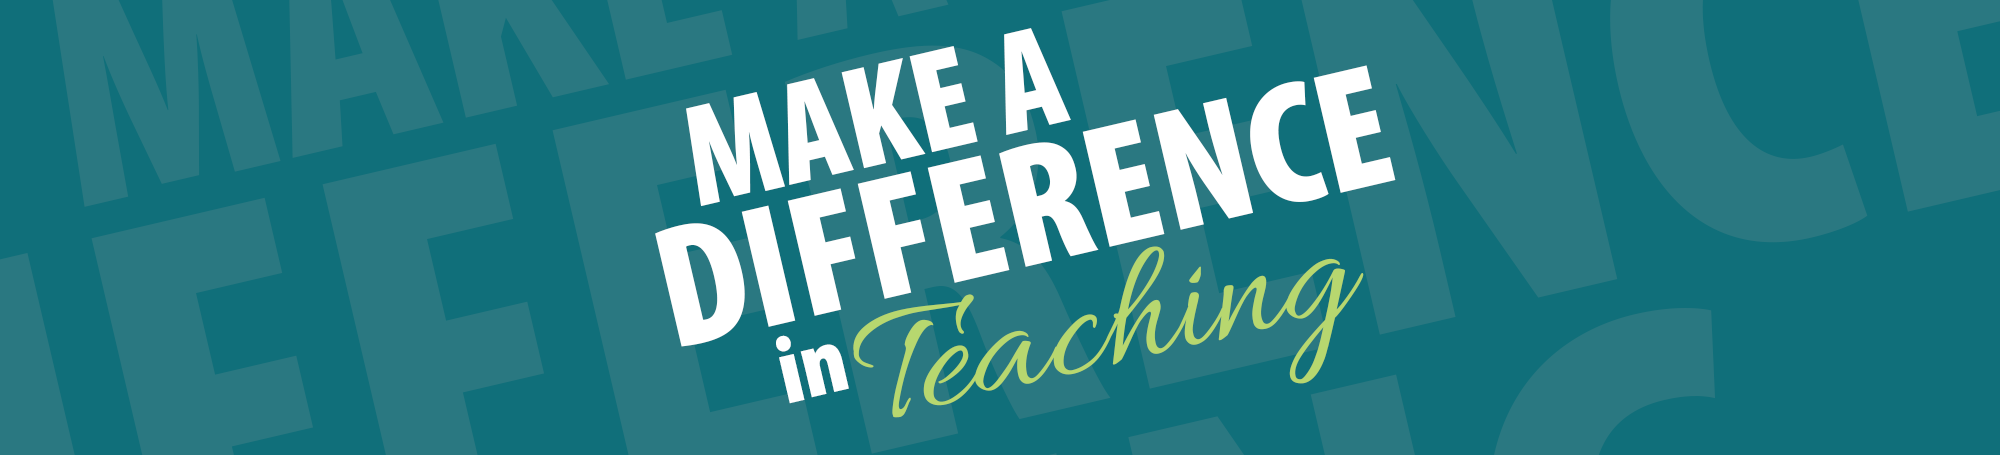 Make a difference in teaching. Become a teaching fellow.